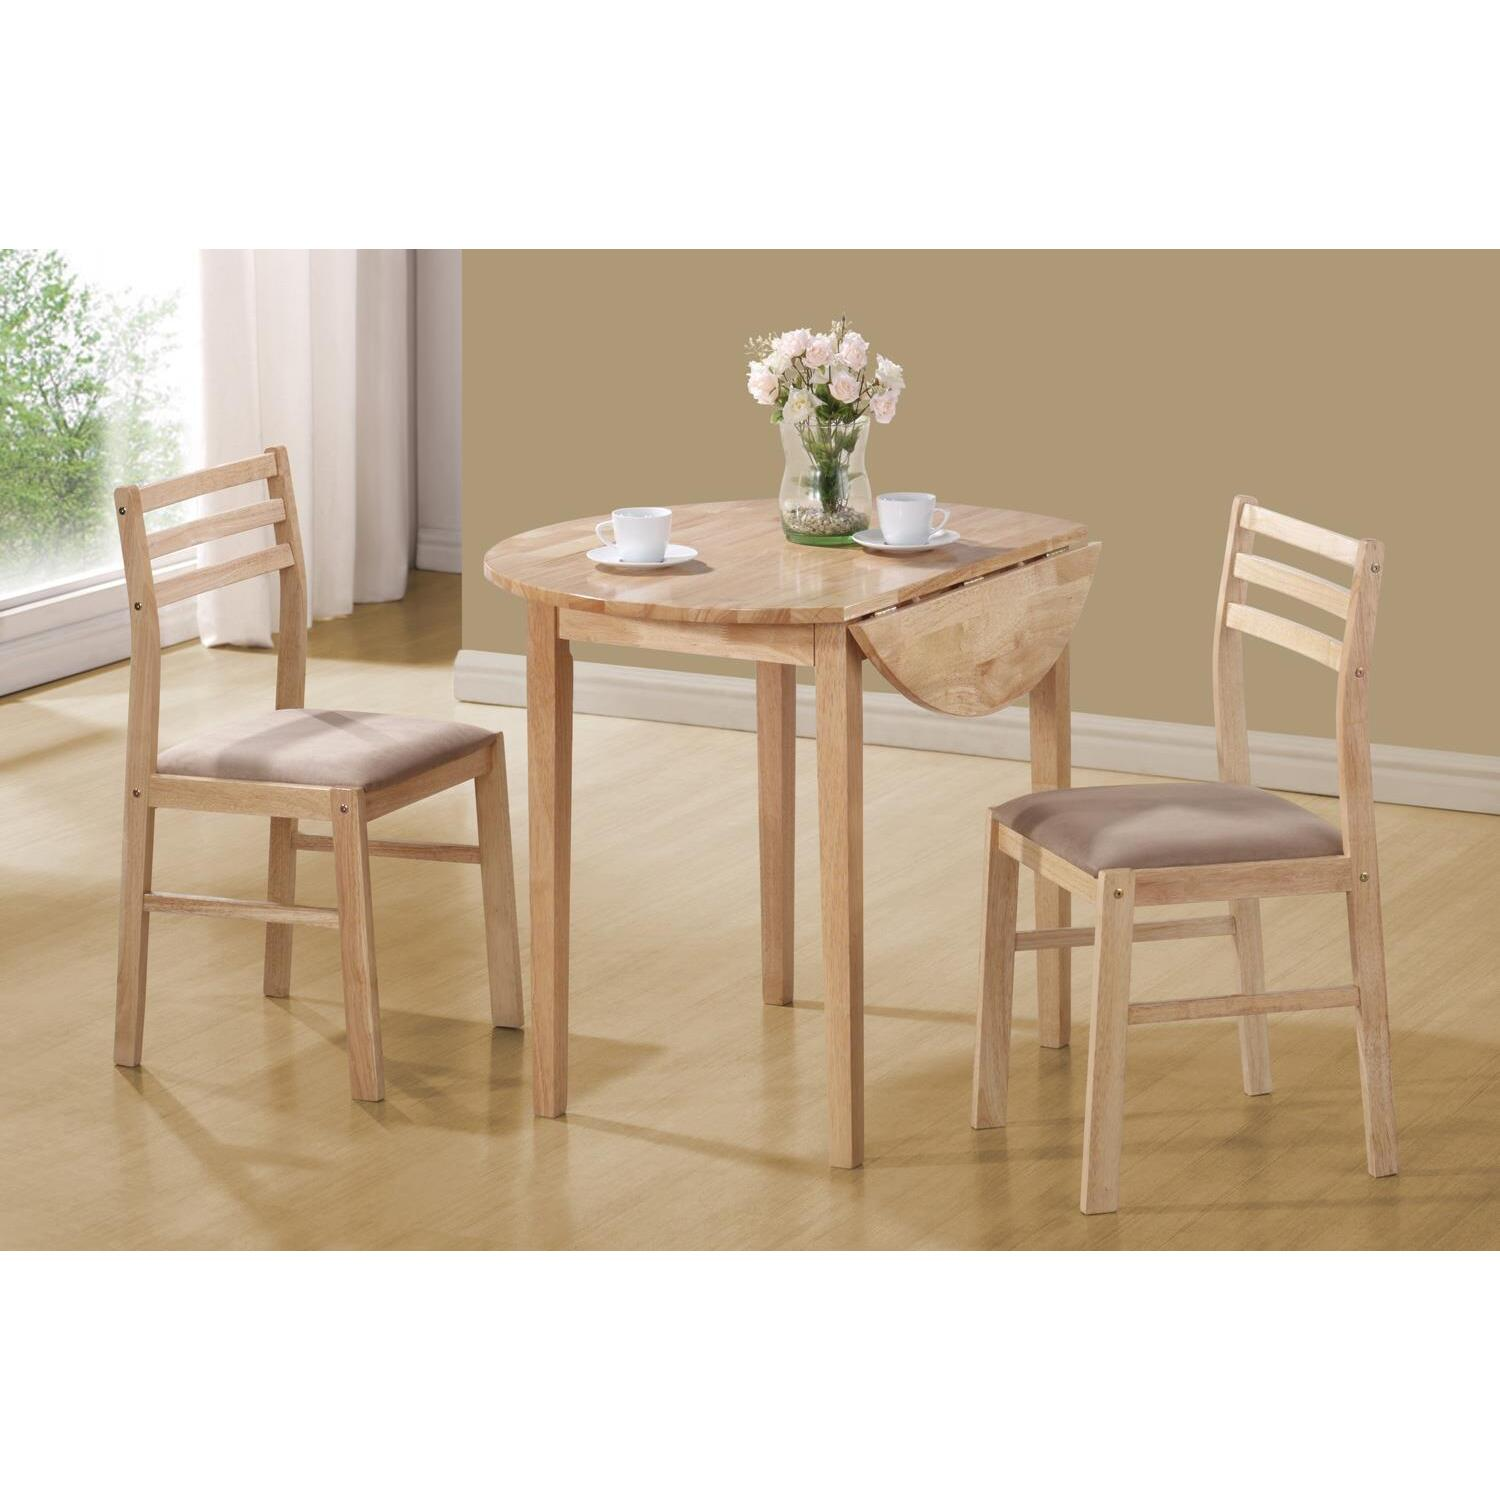 3 Piece Dining Set - From $400.33 To $413.99